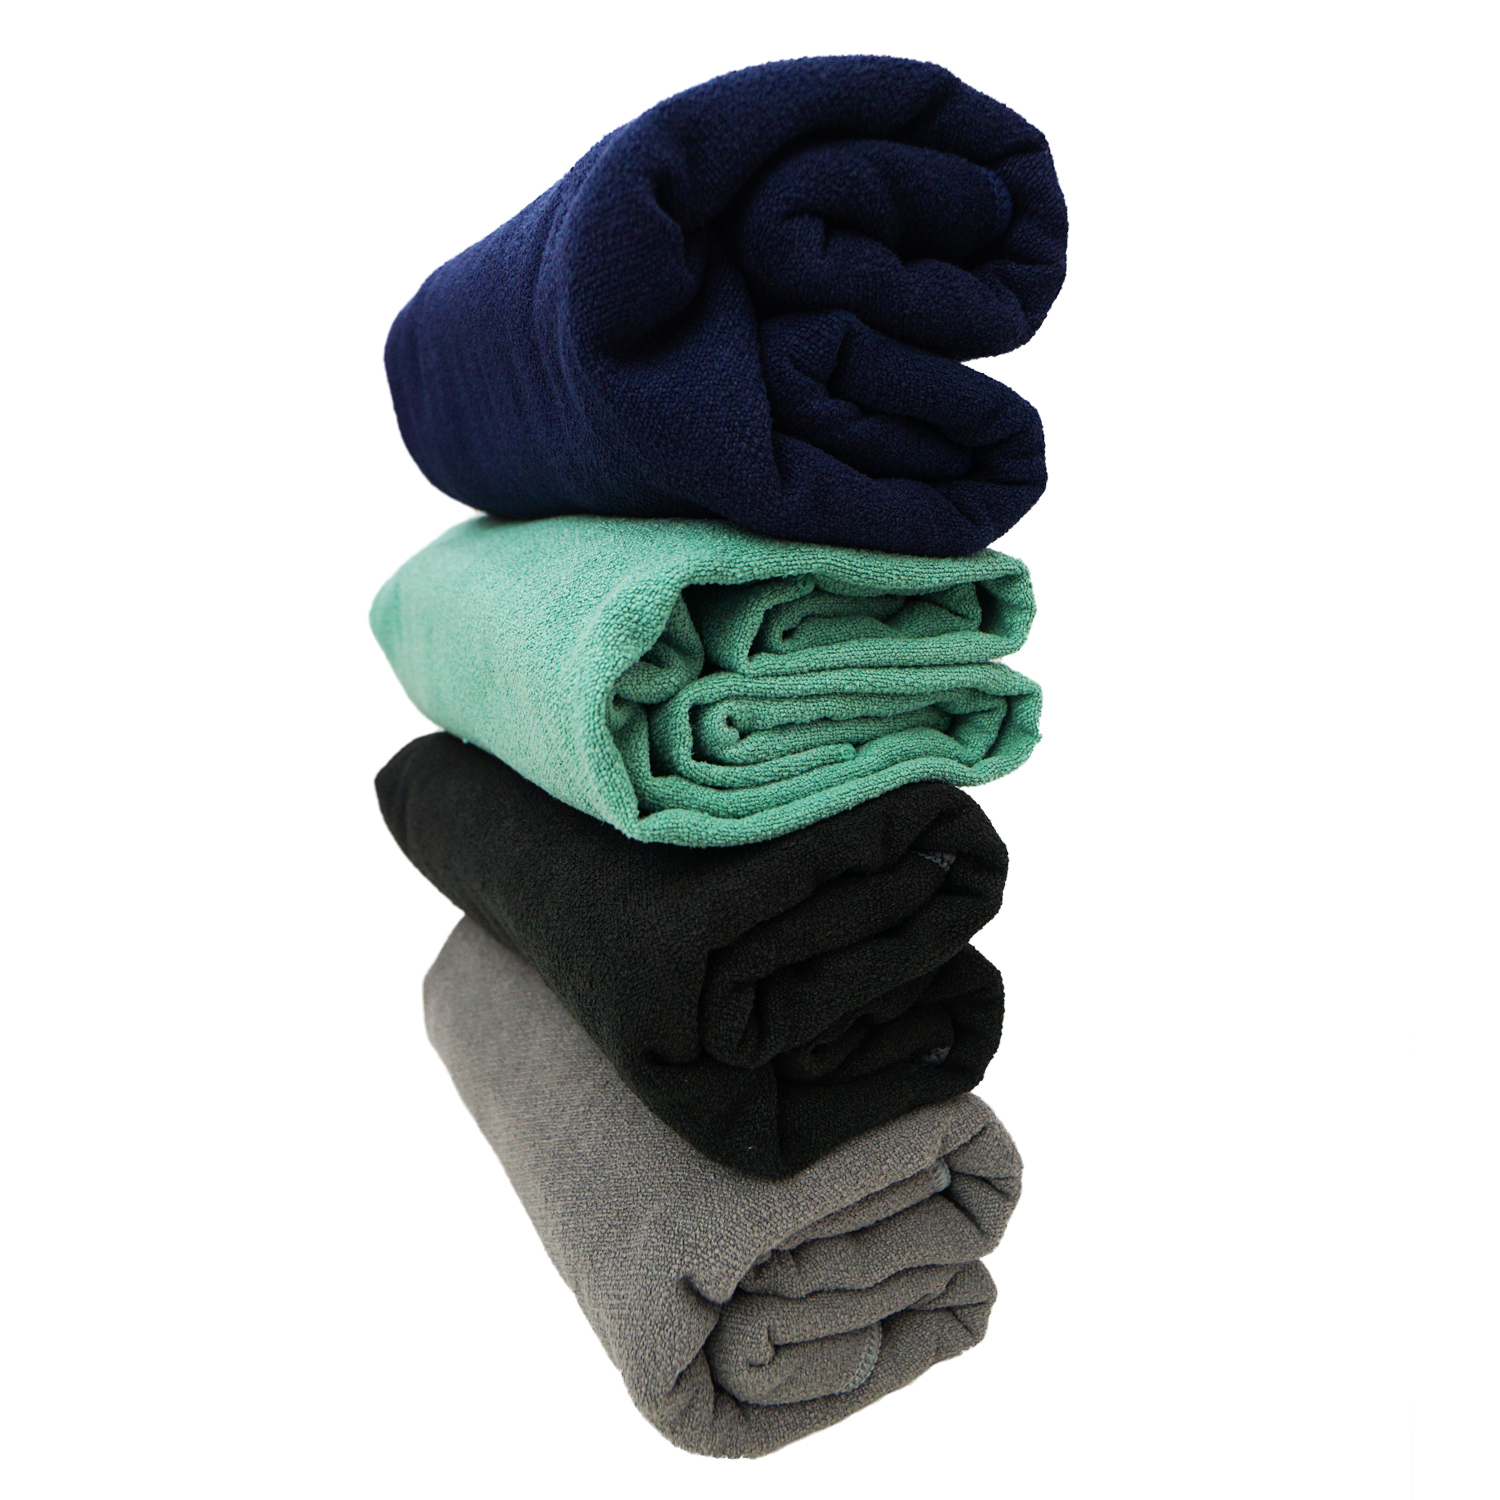 Yoga Direct Yoga Mat Towel Bundle